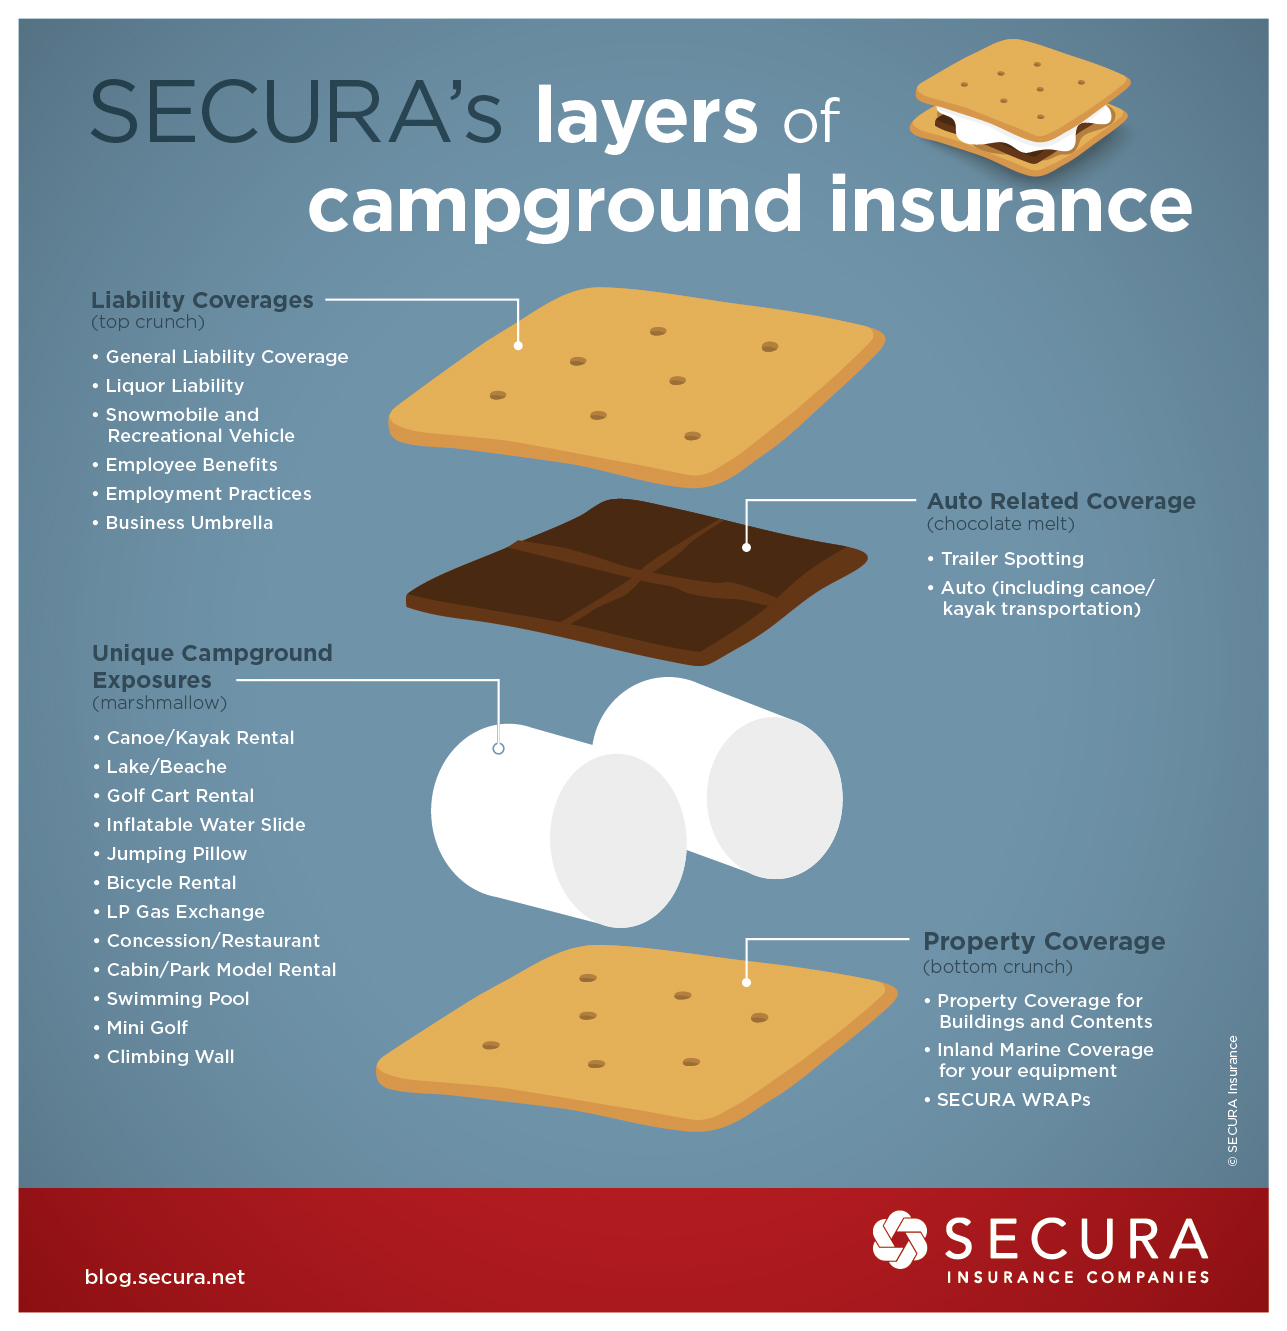 SECURA Insurance - Campground Insurance